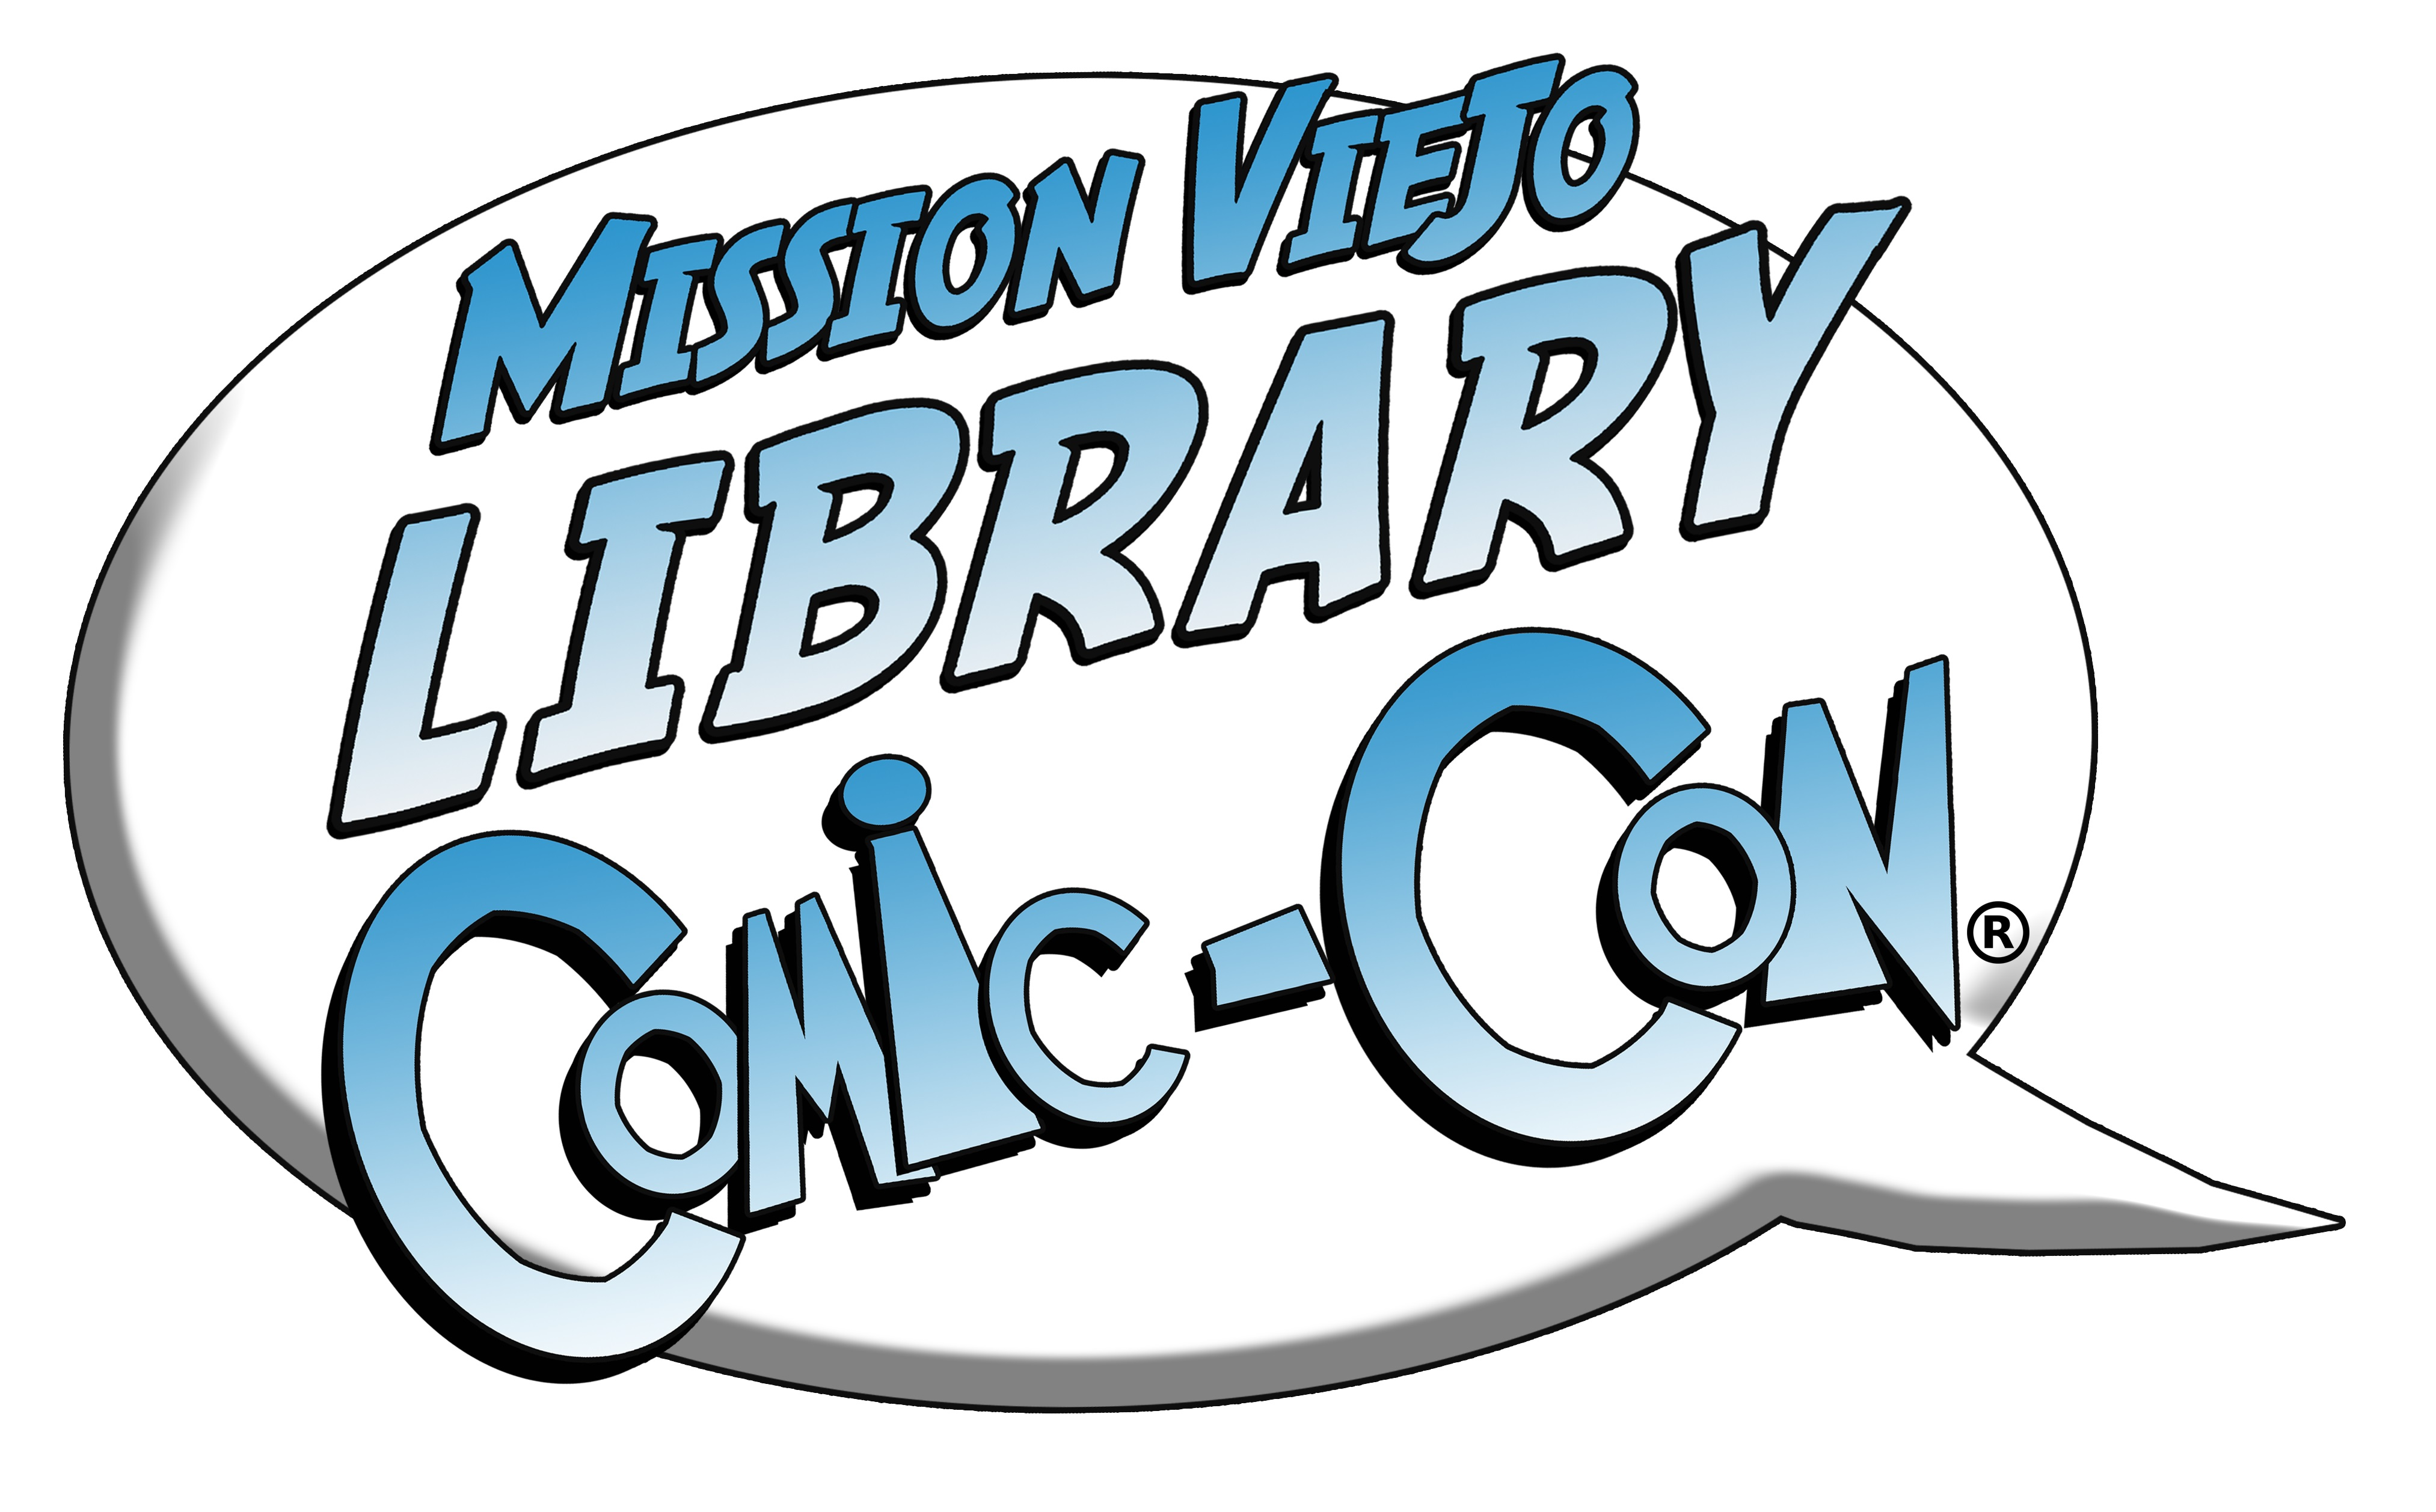 Comic-Con is a registered trademark of San Diego Comic Convention